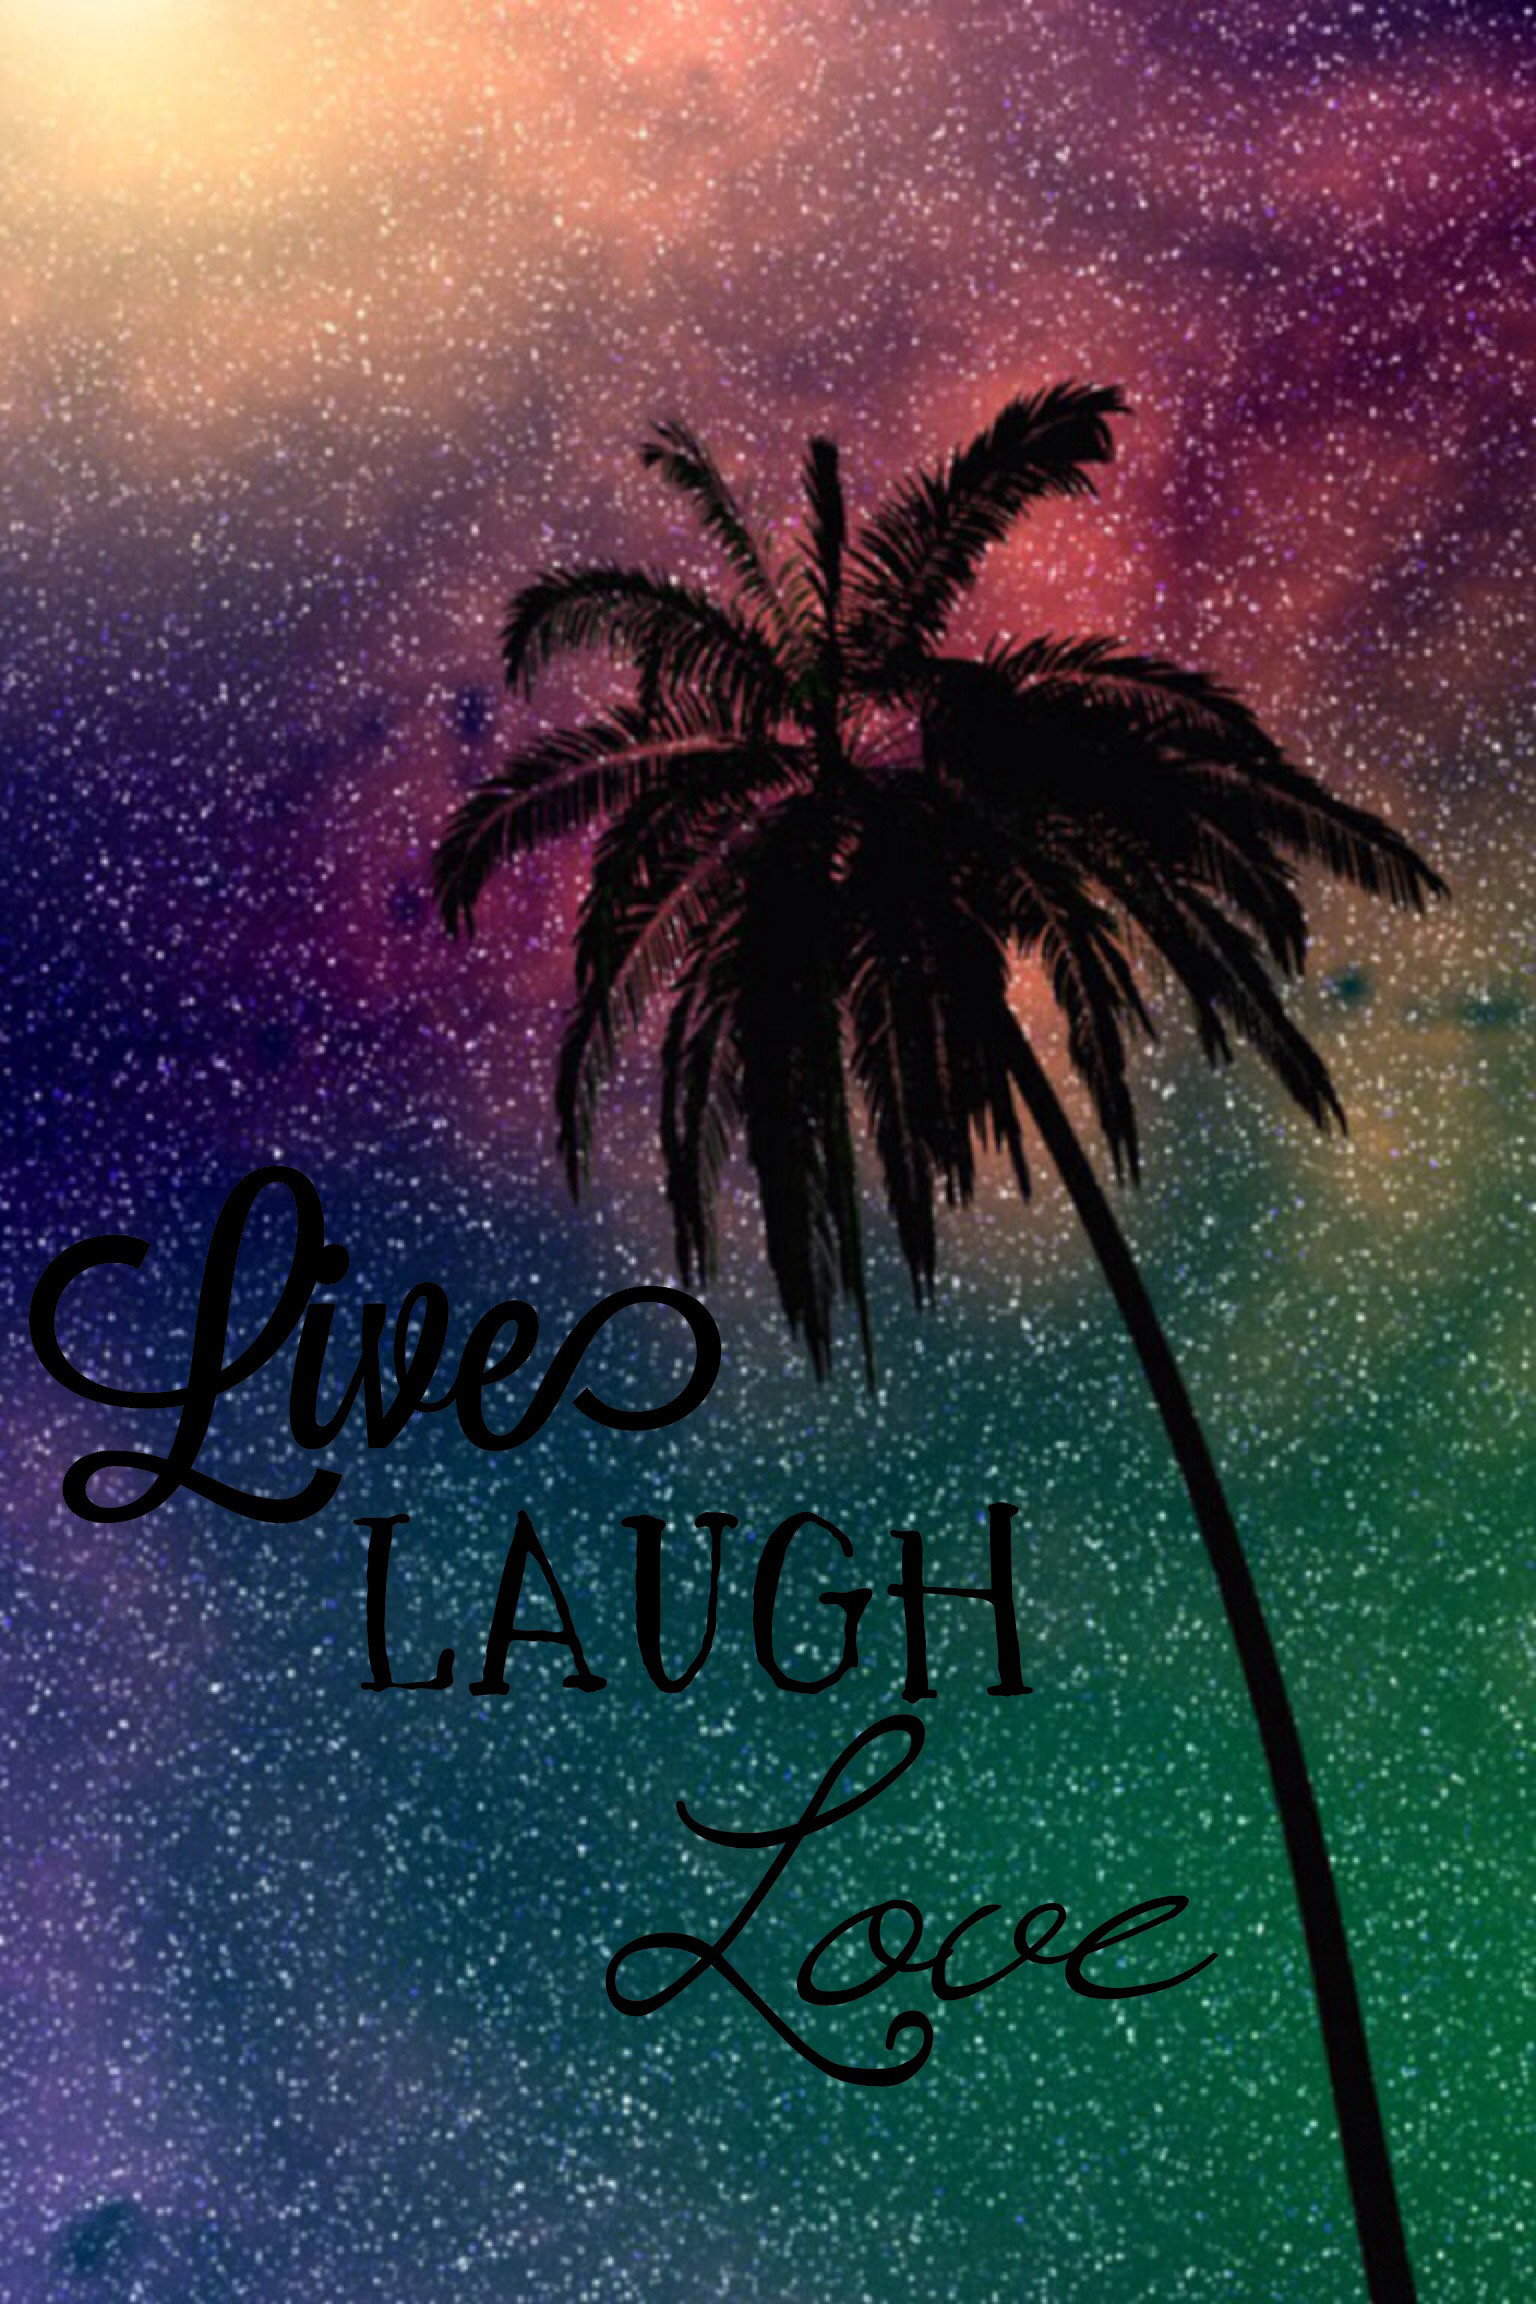 Live Laugh Love Hd Wallpaper : Live Laugh Love Wallpaper - HD Wallpapers Blog